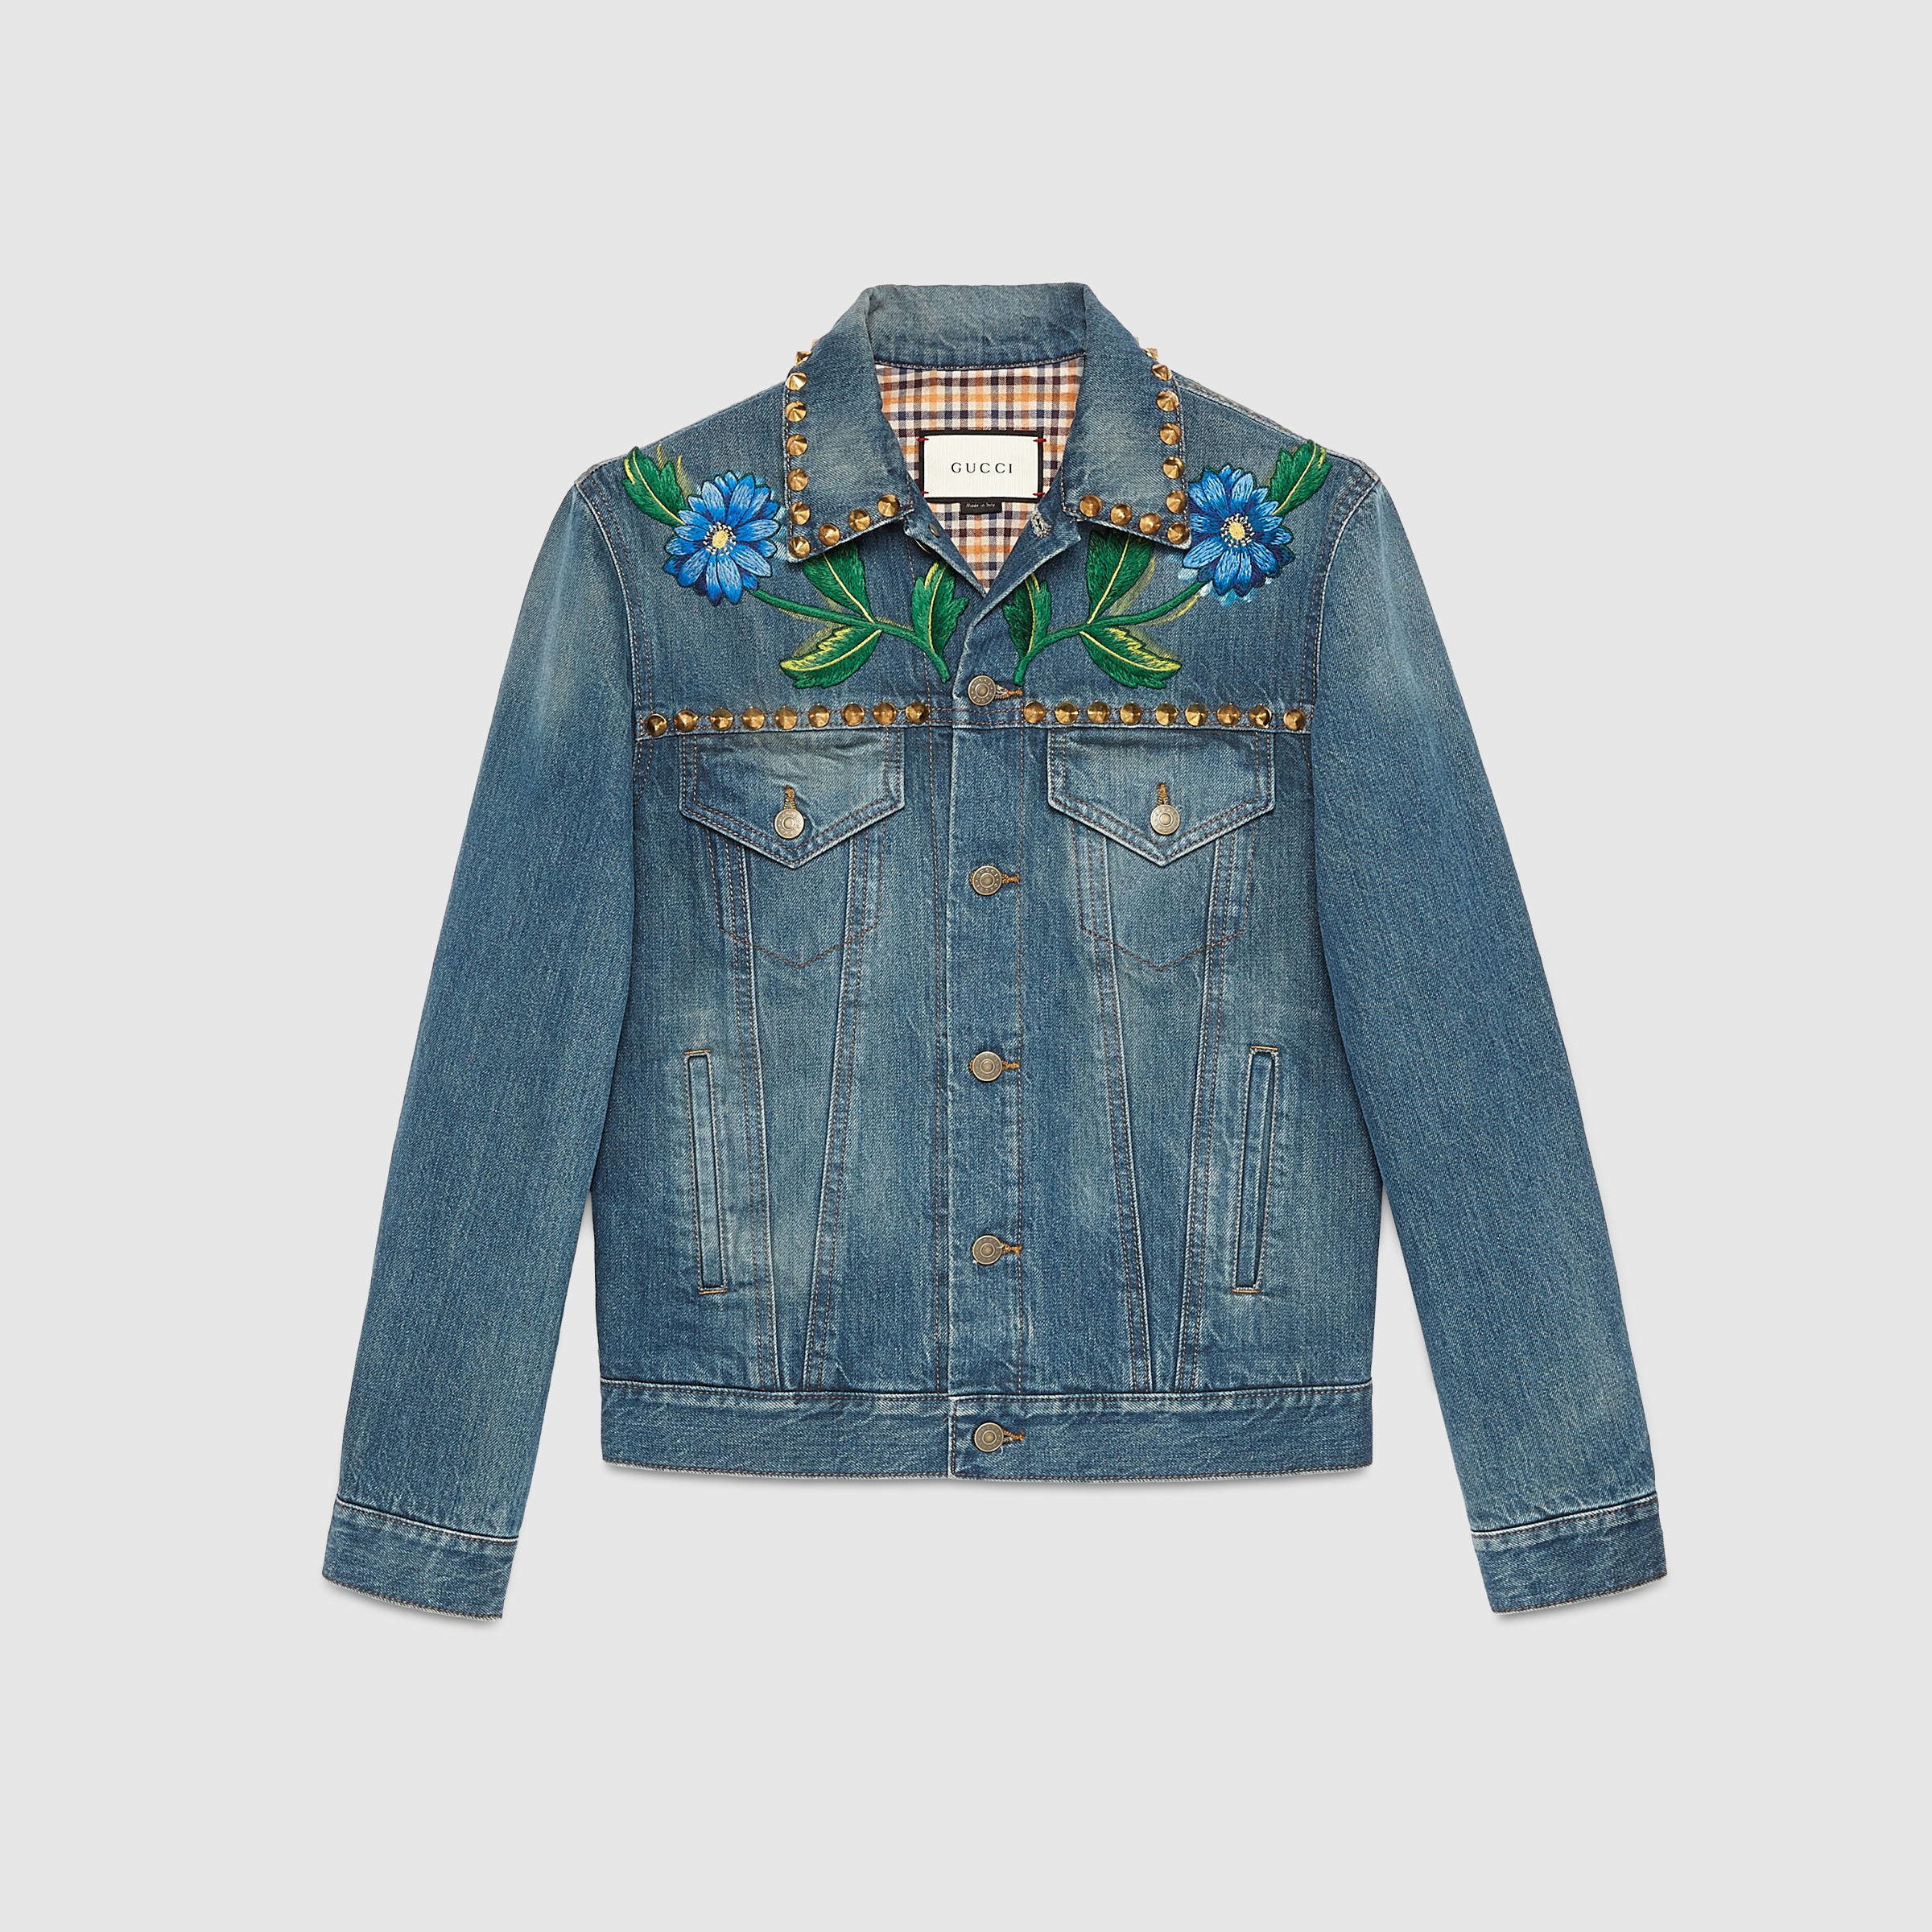 Lyst Gucci Painted Denim Jacket With Embroidery In Blue For Men